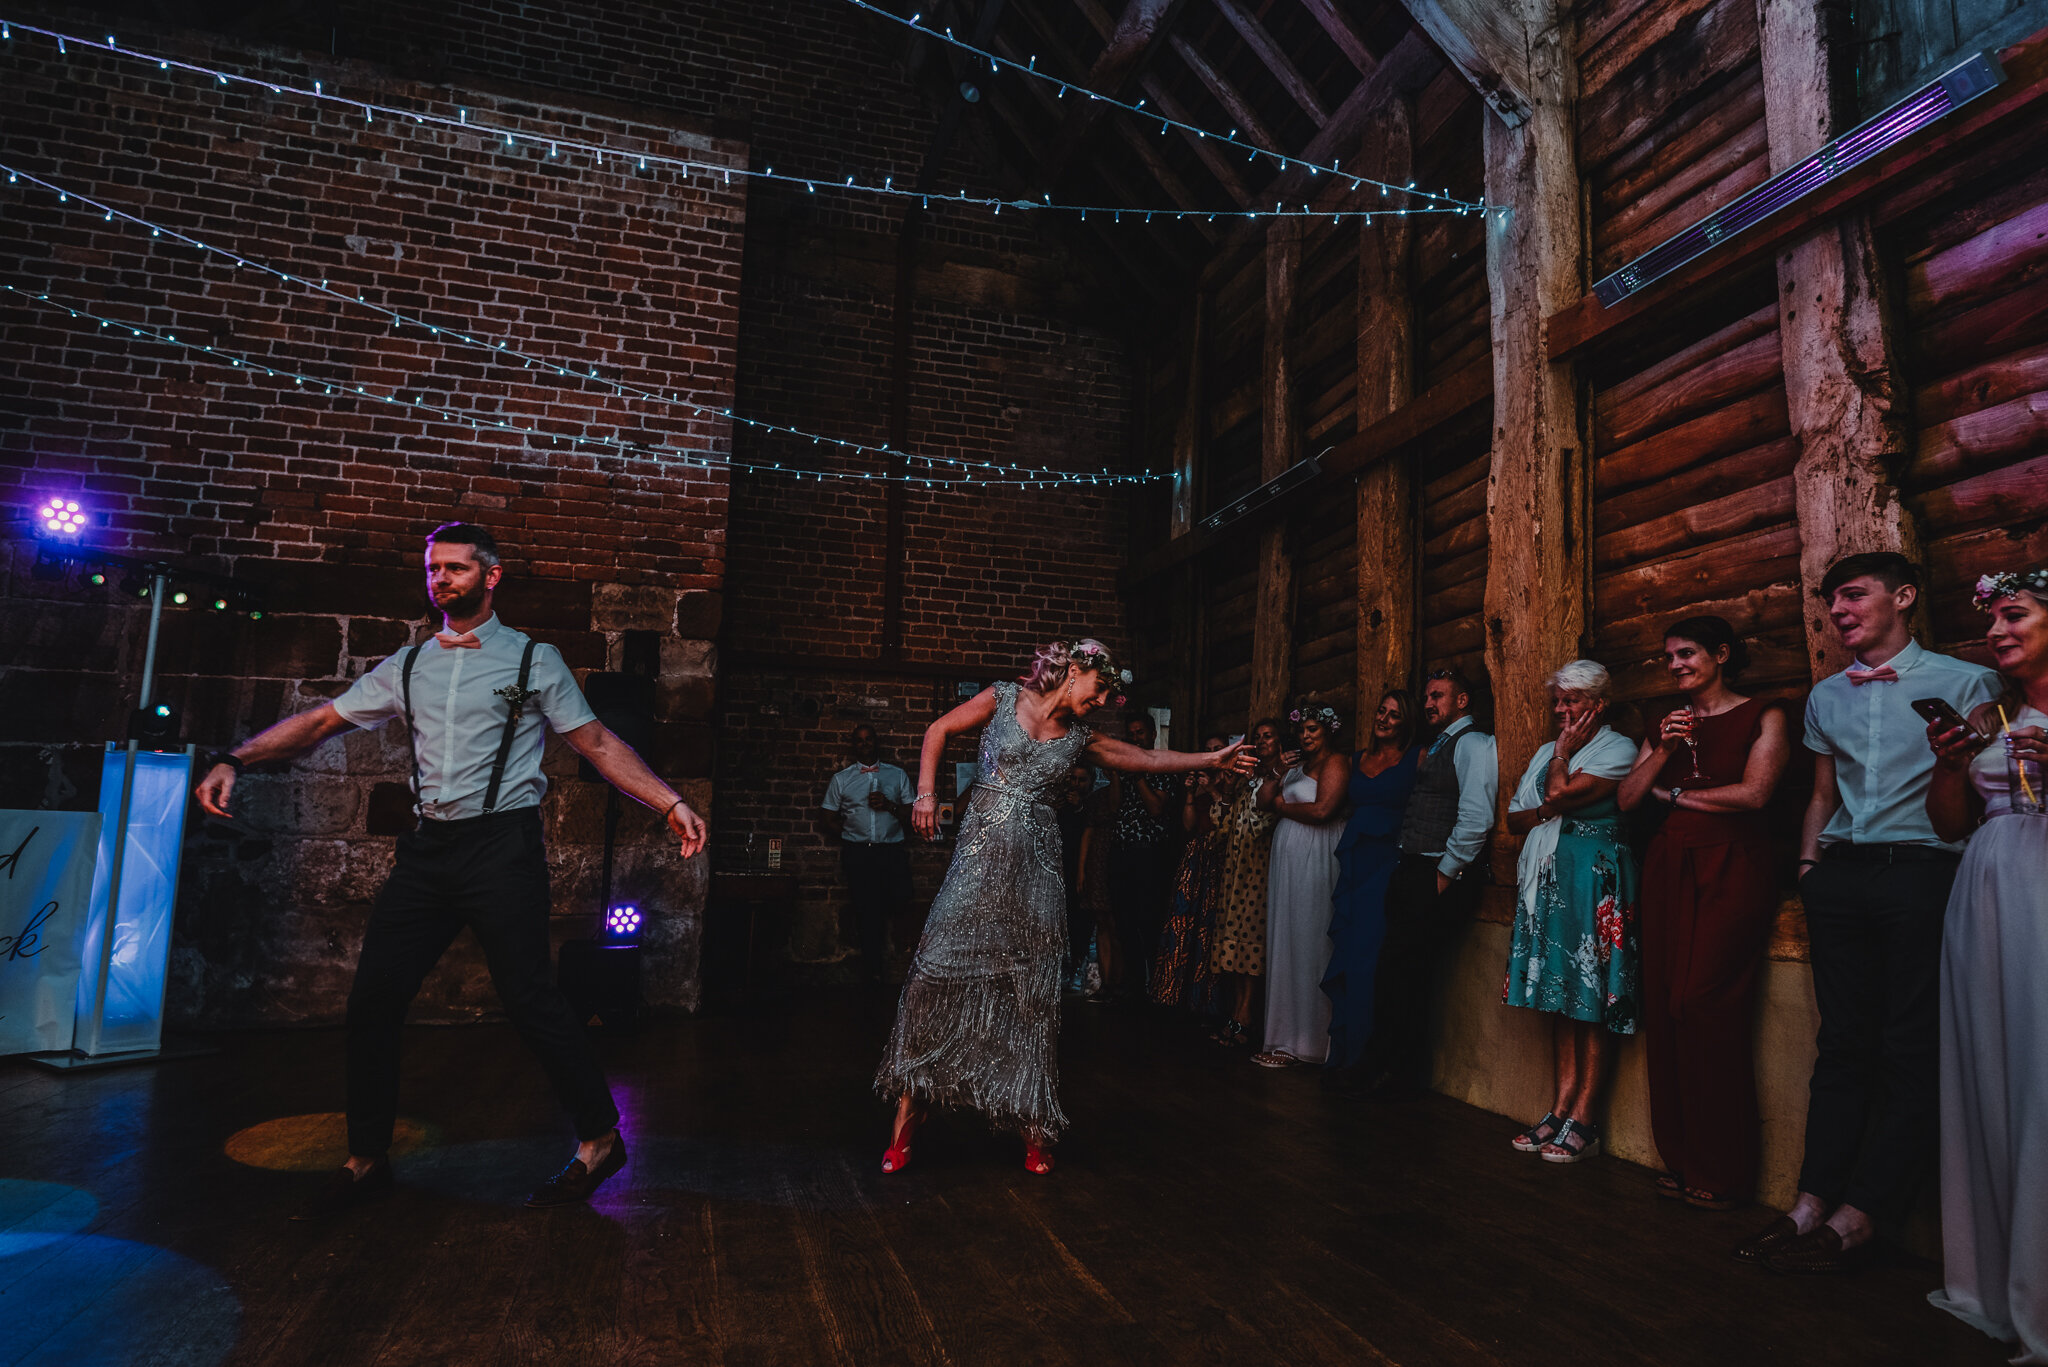 Festival-Barn-Wedding-Shropshire-Pimhill-Barn-Wedding-PhotographyLisa and Rich-419.jpg